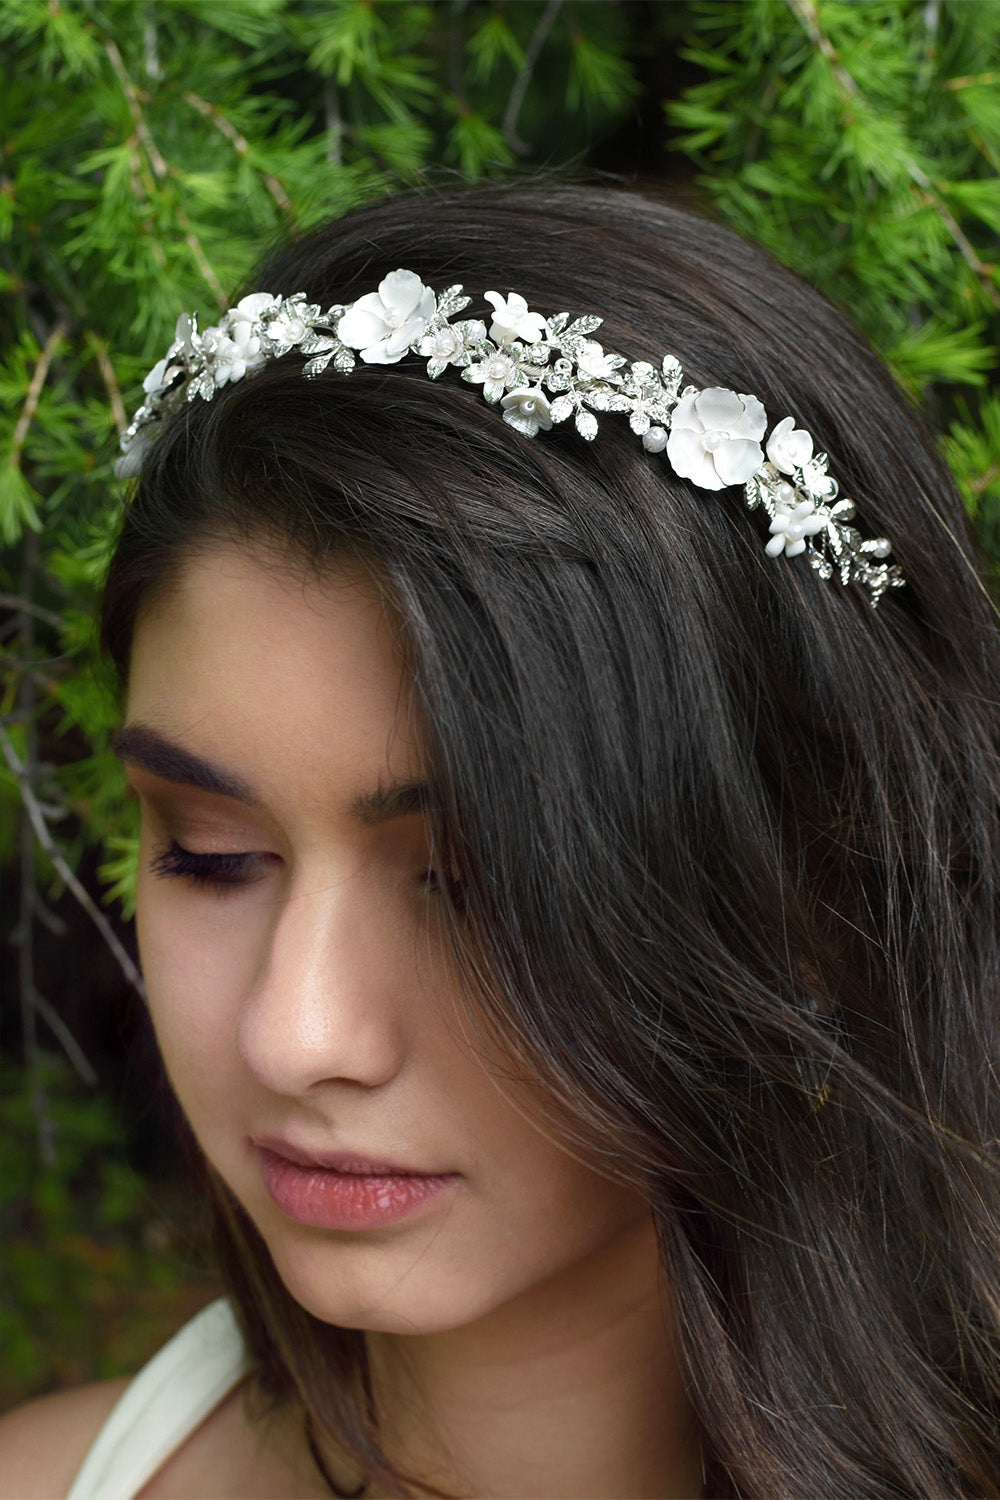 Dark hair model wearing a silver and flowers bridal headband with a pine tree bsckground